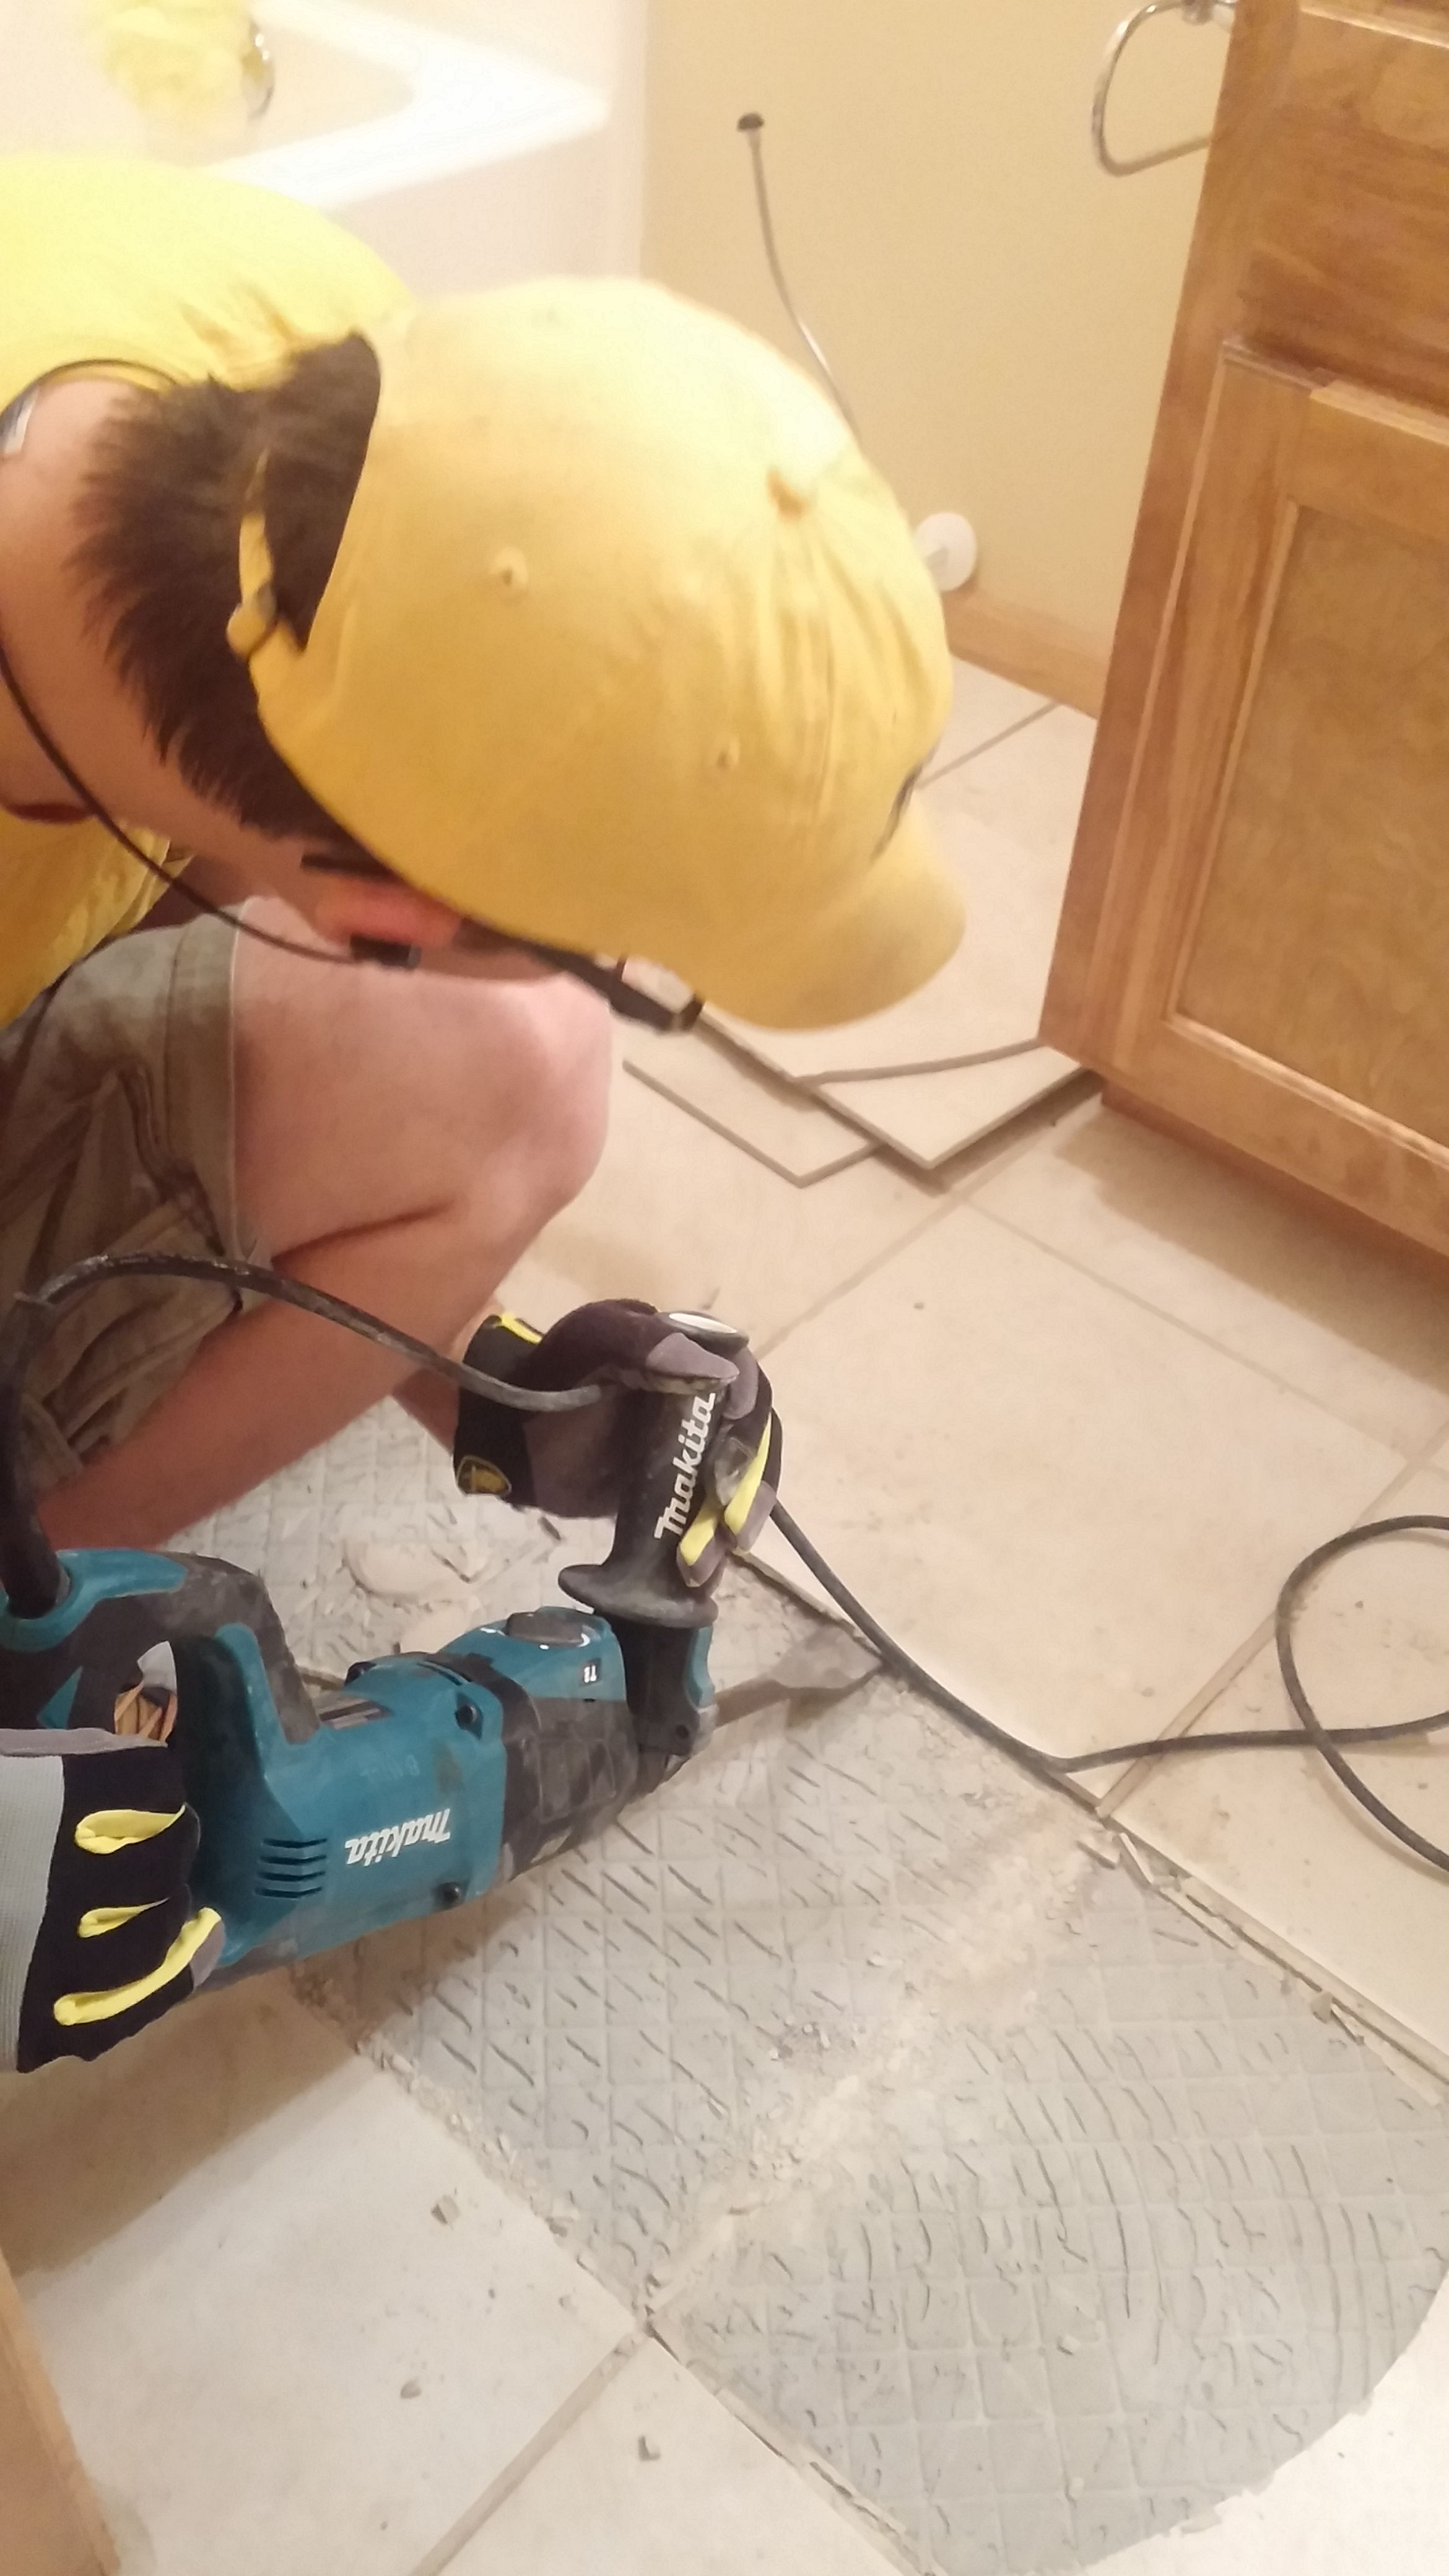 The Best Tool For Tile Removal Is A Rotary Hammer With Flat Chisel Bit